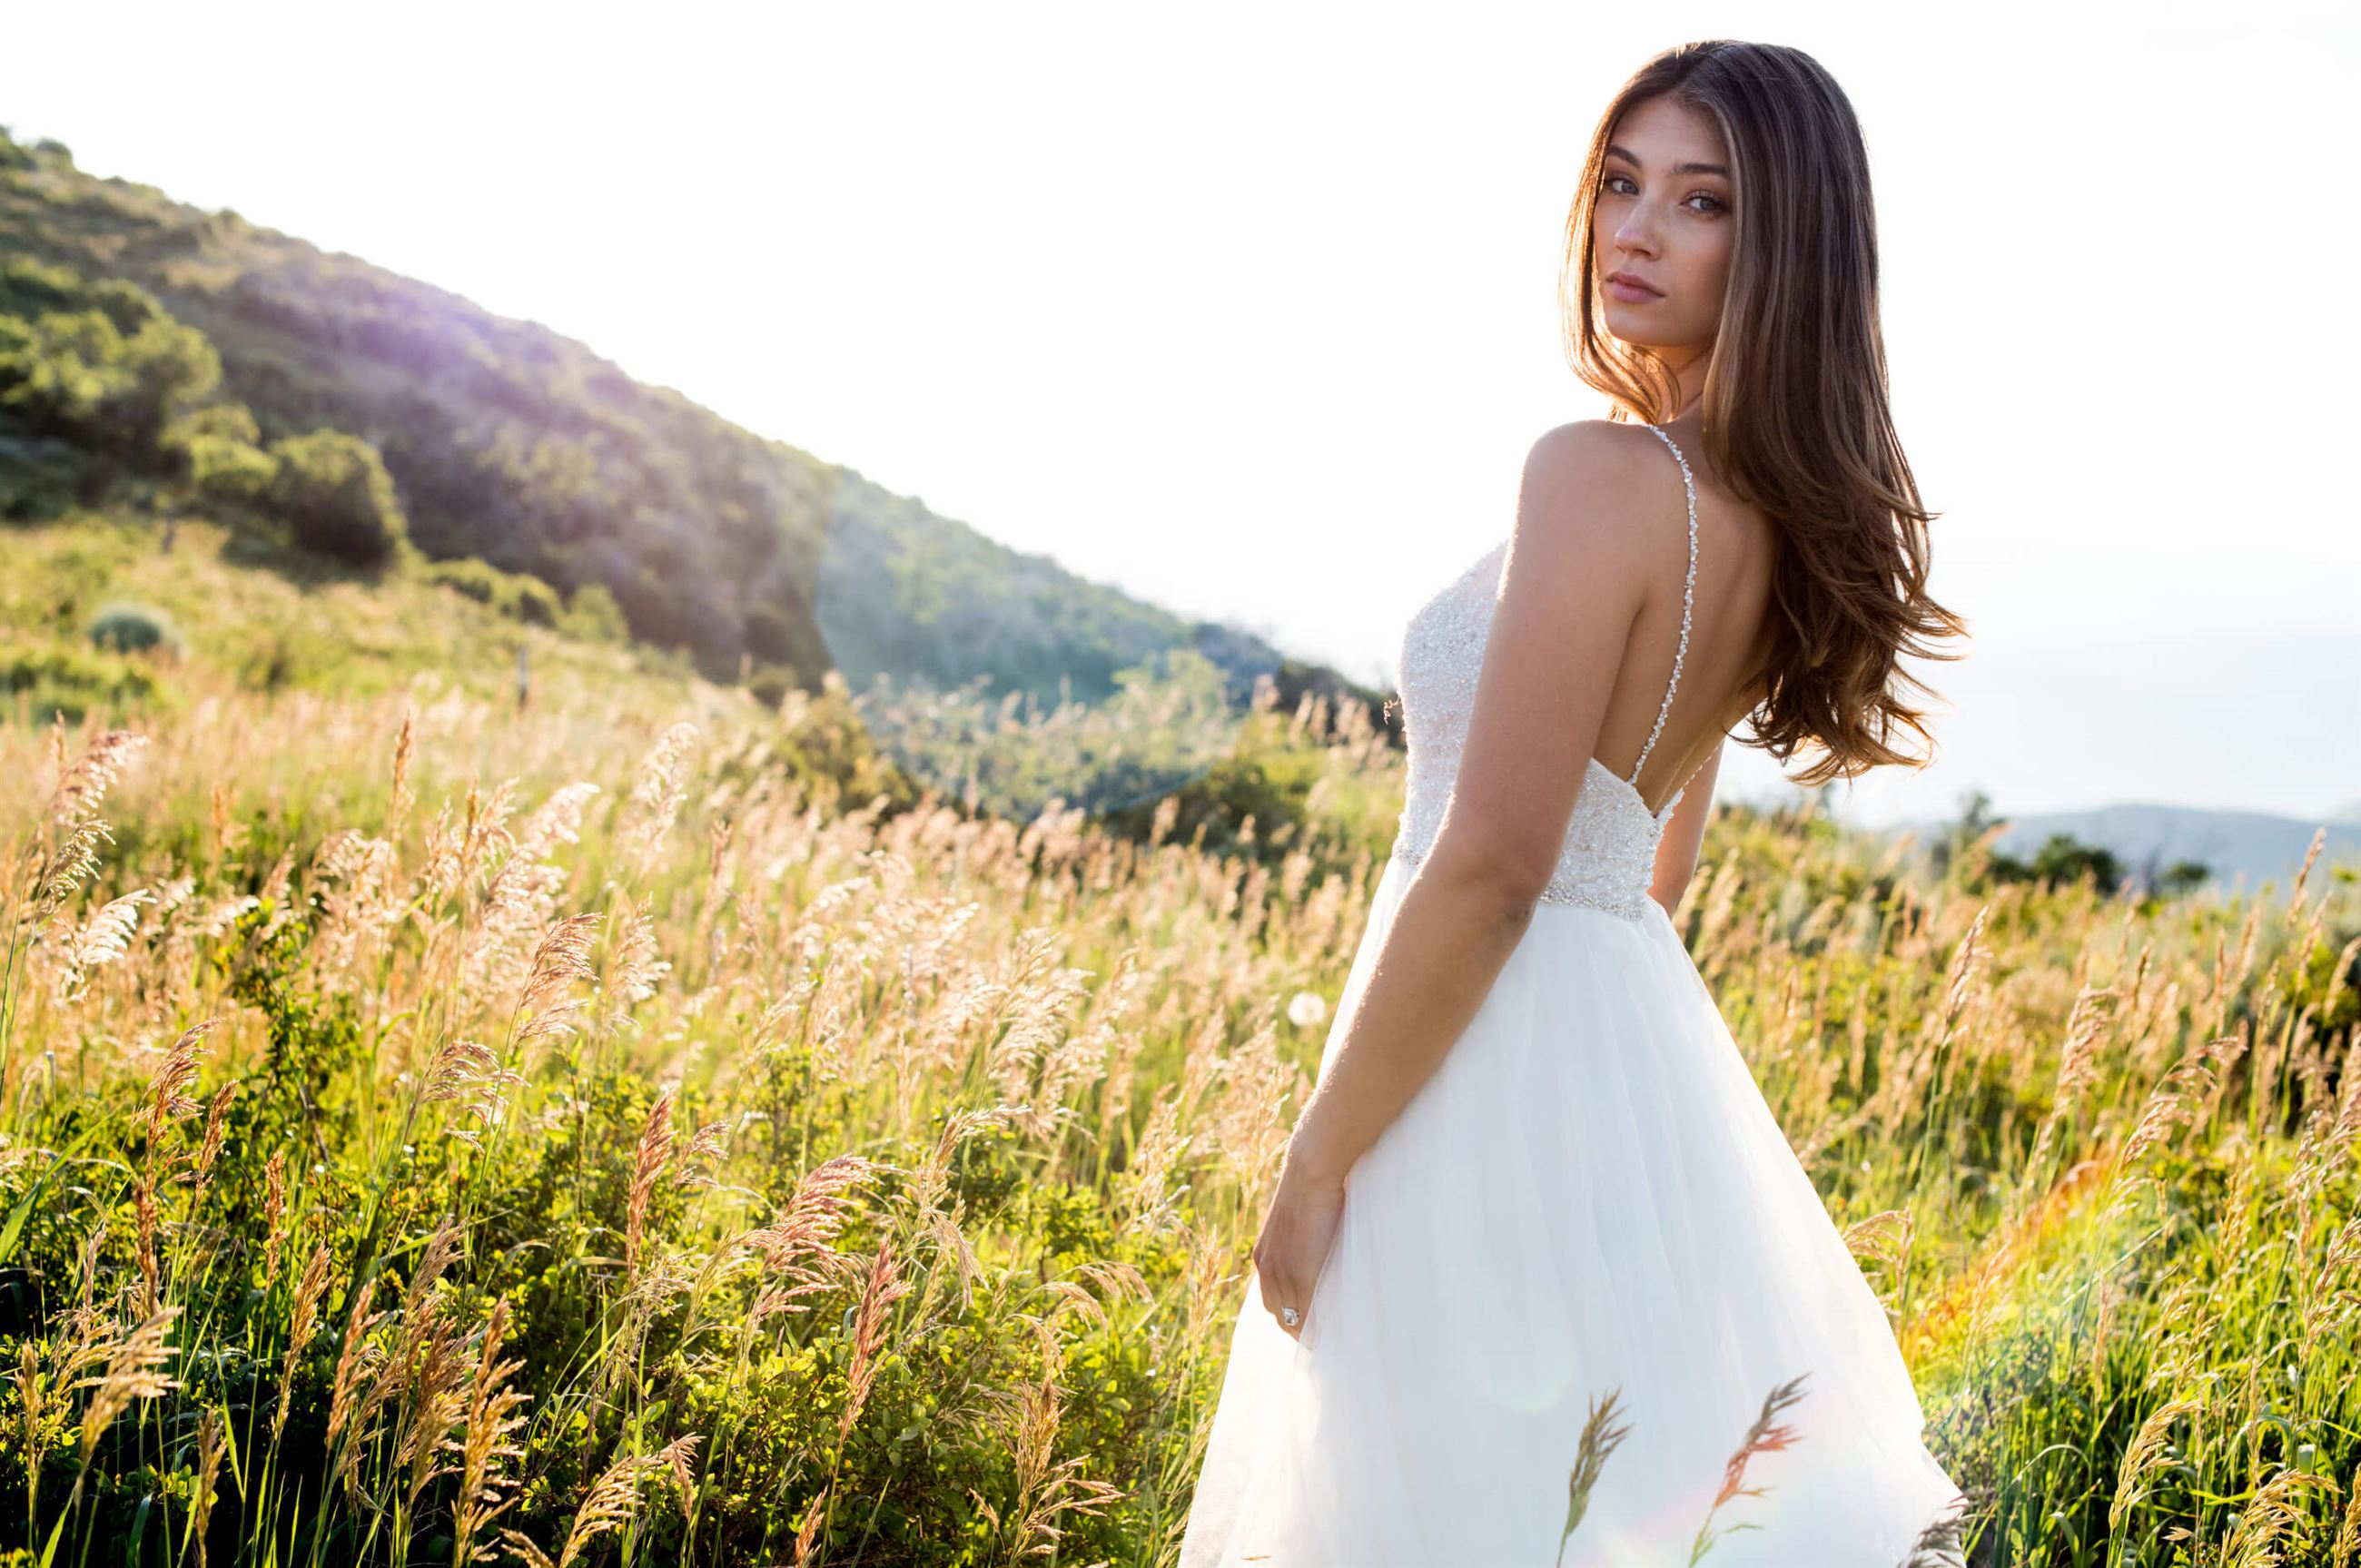 Brunette model in white wedding dress in field